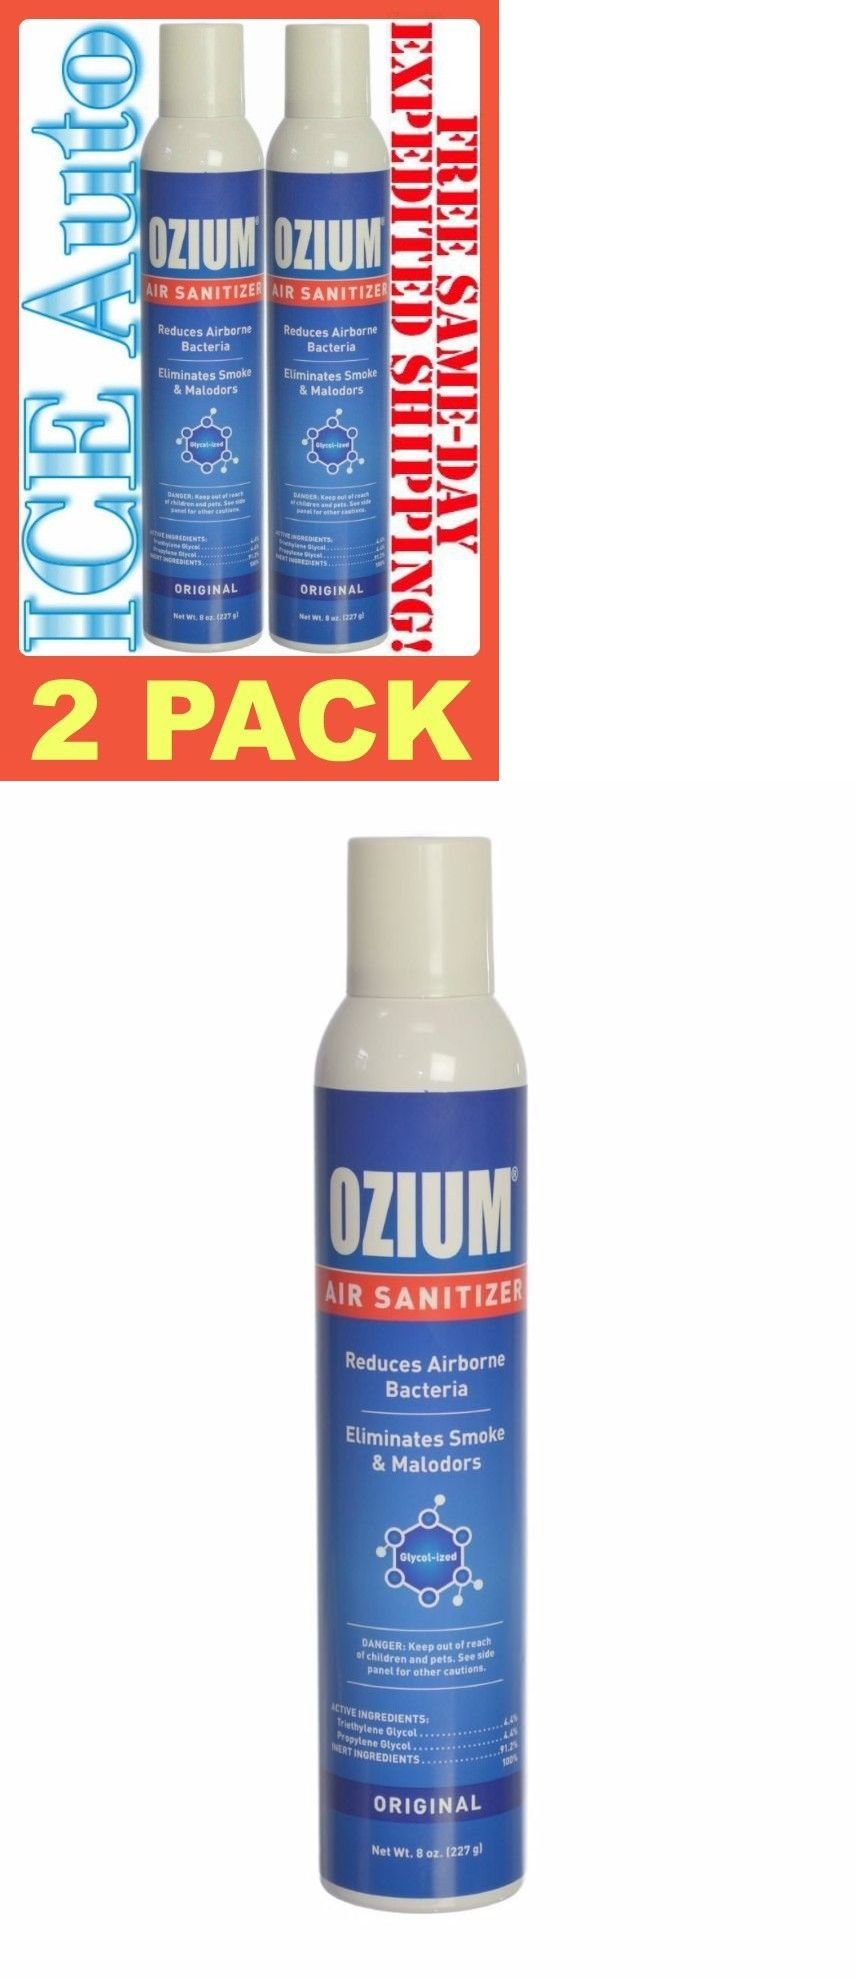 Air Fresheners 166724 2 Pack Ozium Original Freshener Sanitizer Smoke And Odor Eliminator 8 Oz Cans It Now Only 19 95 On Ebay